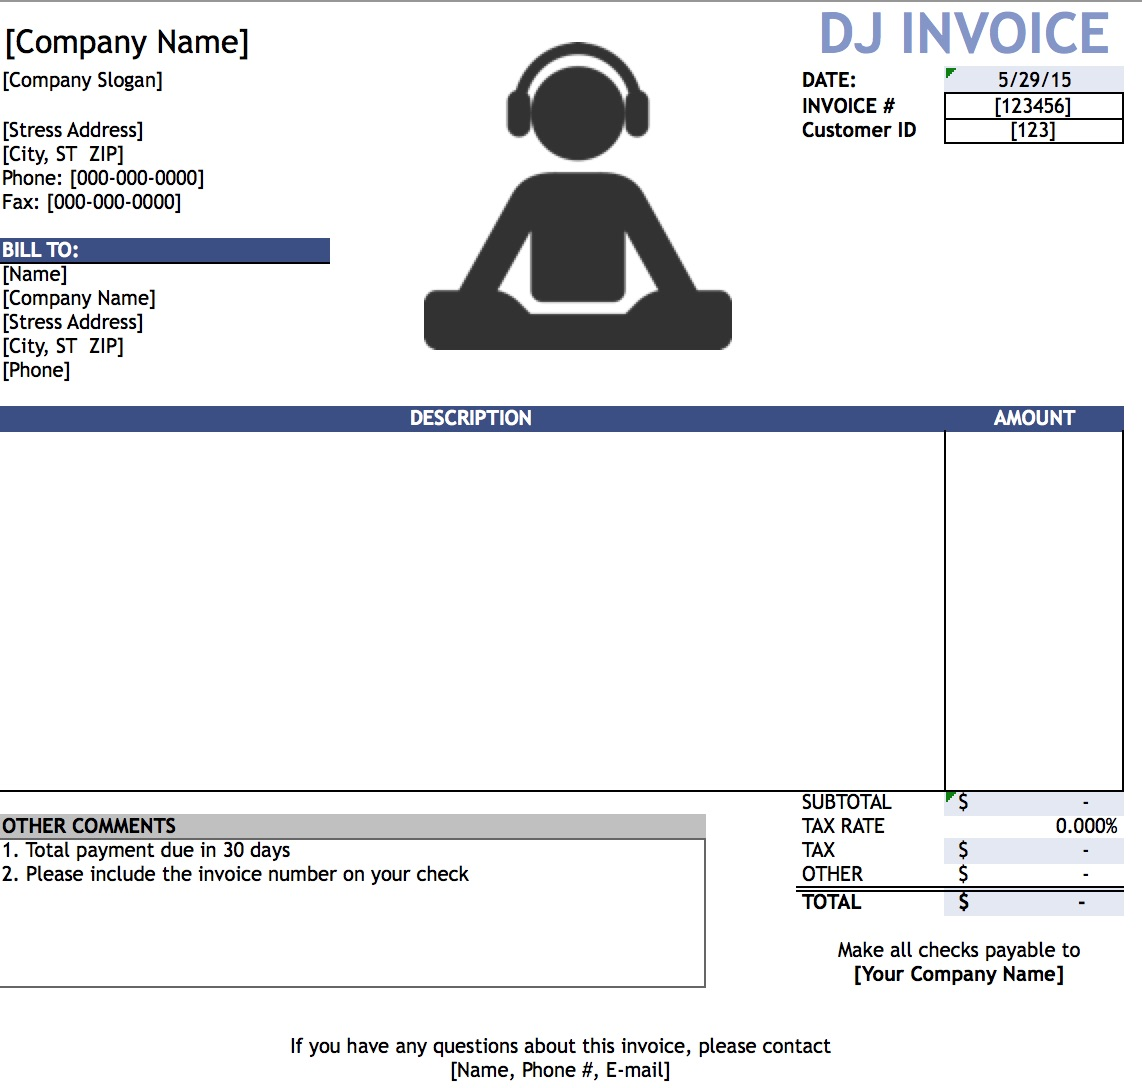 Free DJ Disc Jockey Invoice Template Excel PDF Word Doc - How to create an invoice in word for service business